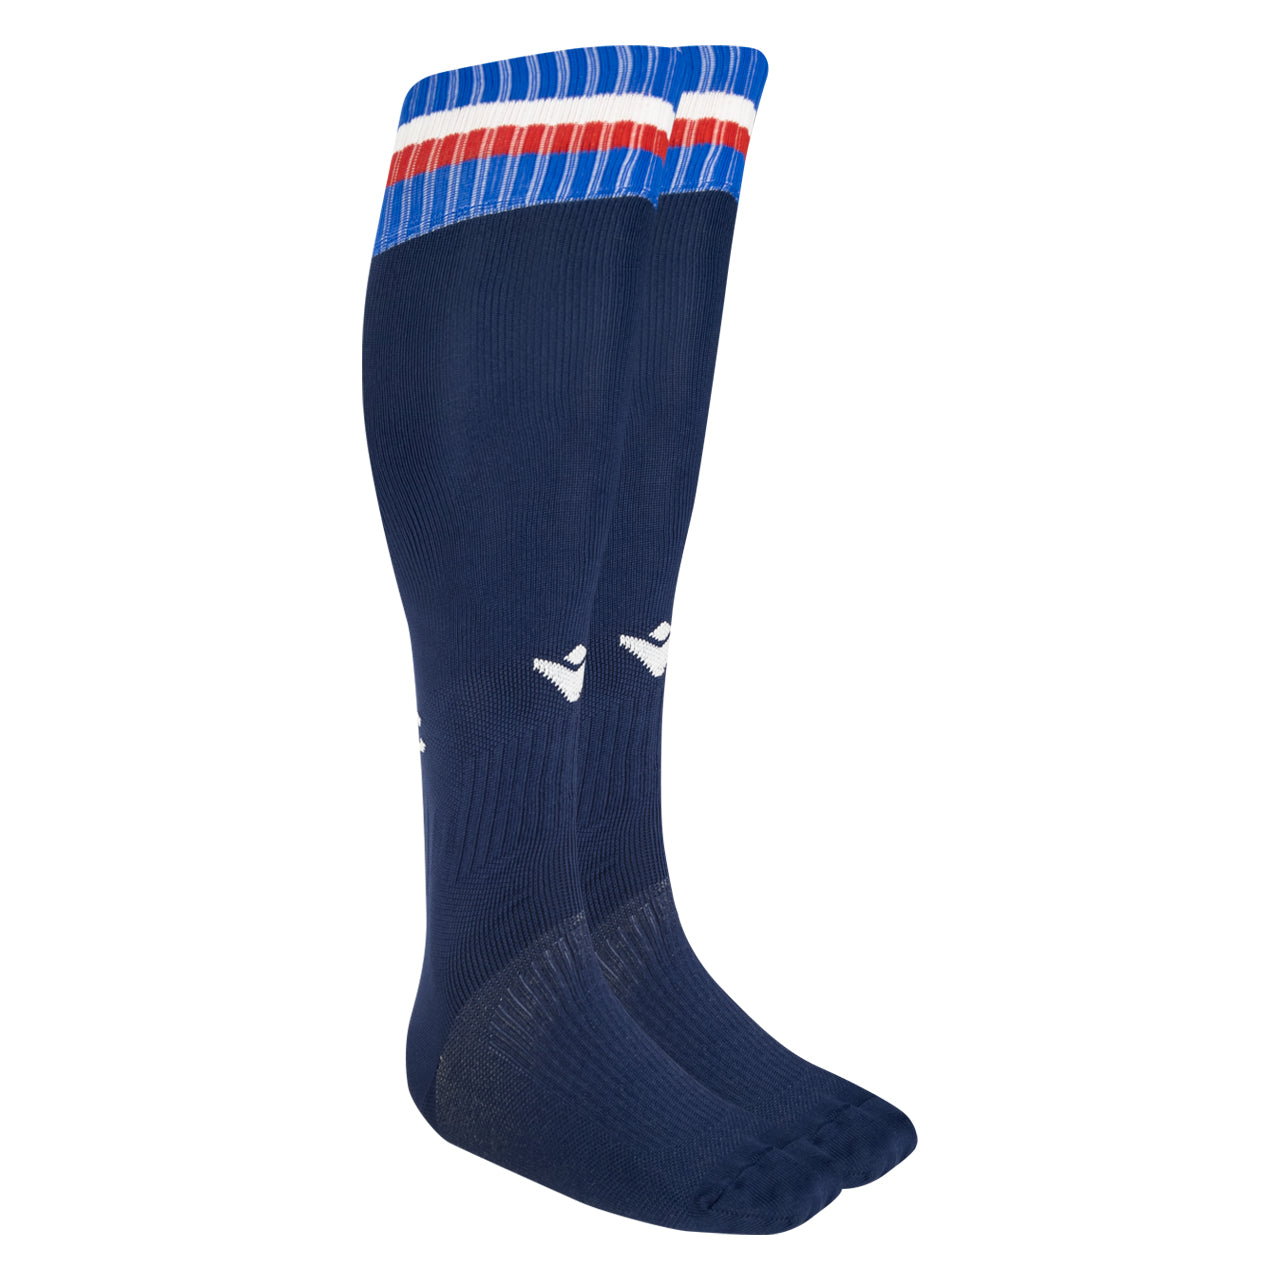 NFFC Junior Away Socks 2019/20